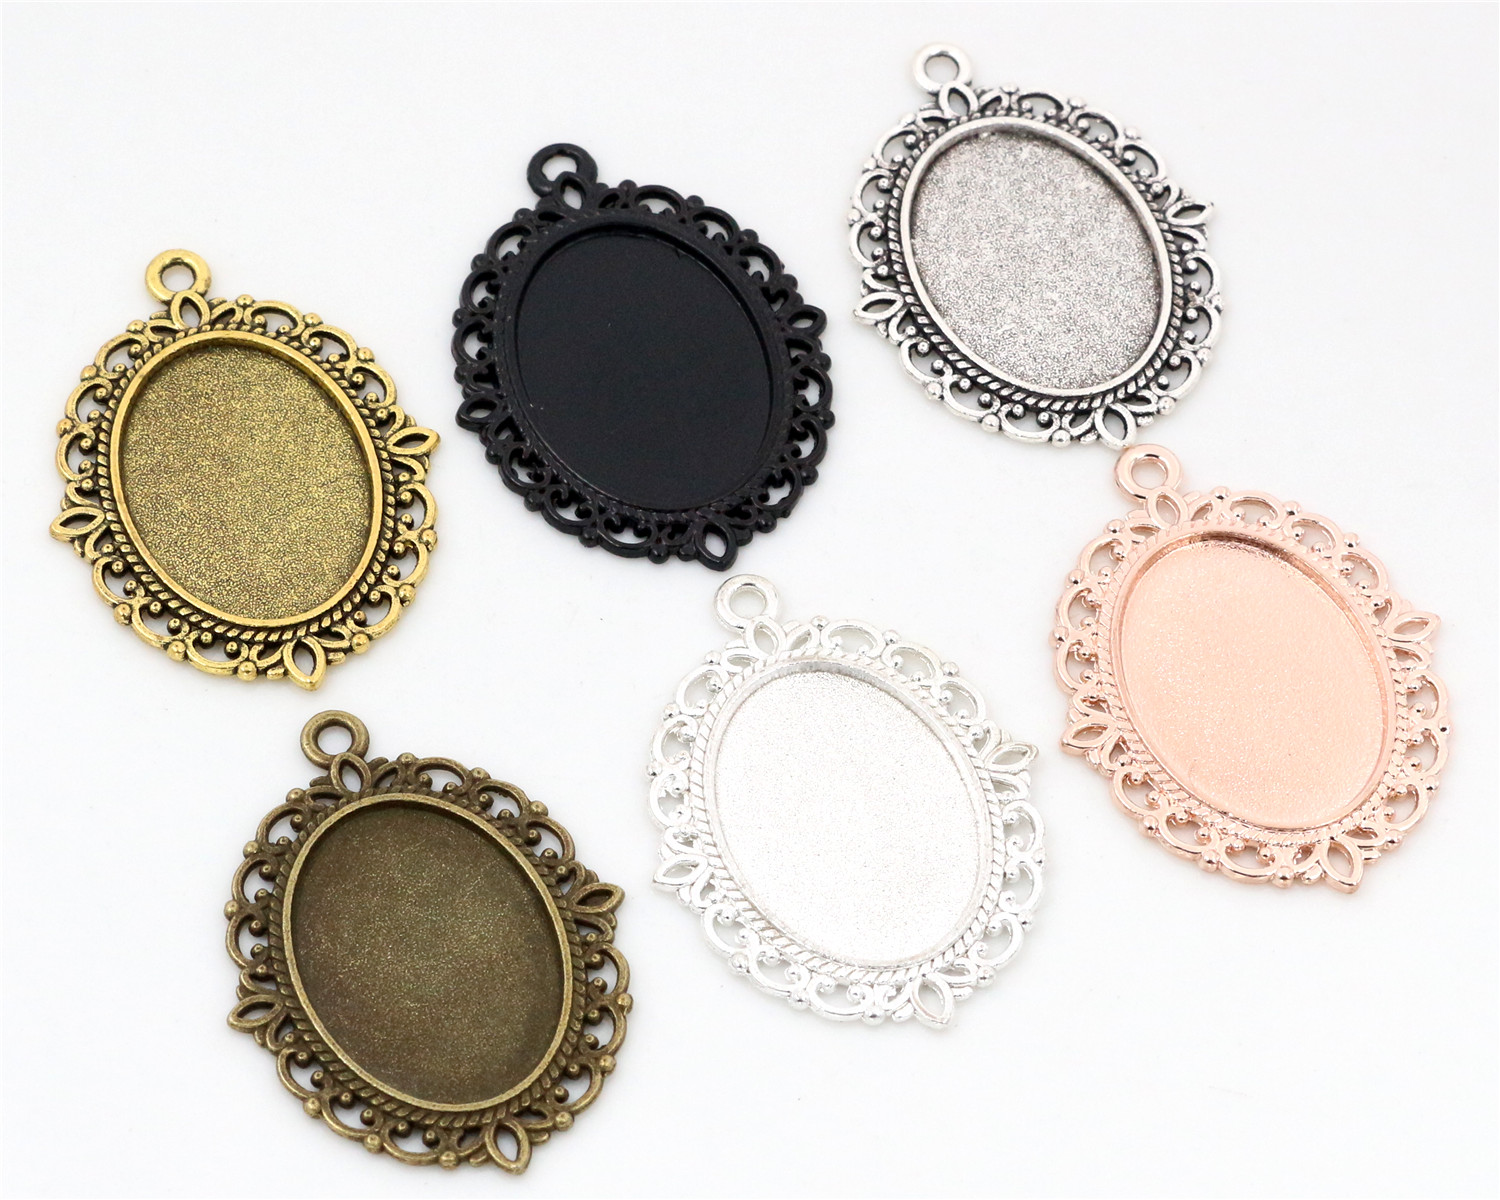 10pcs 18x25mm Inner Size 6 Colors Plated Classic Style Cameo Cabochon Base Setting Charms Pendant Necklace Findings